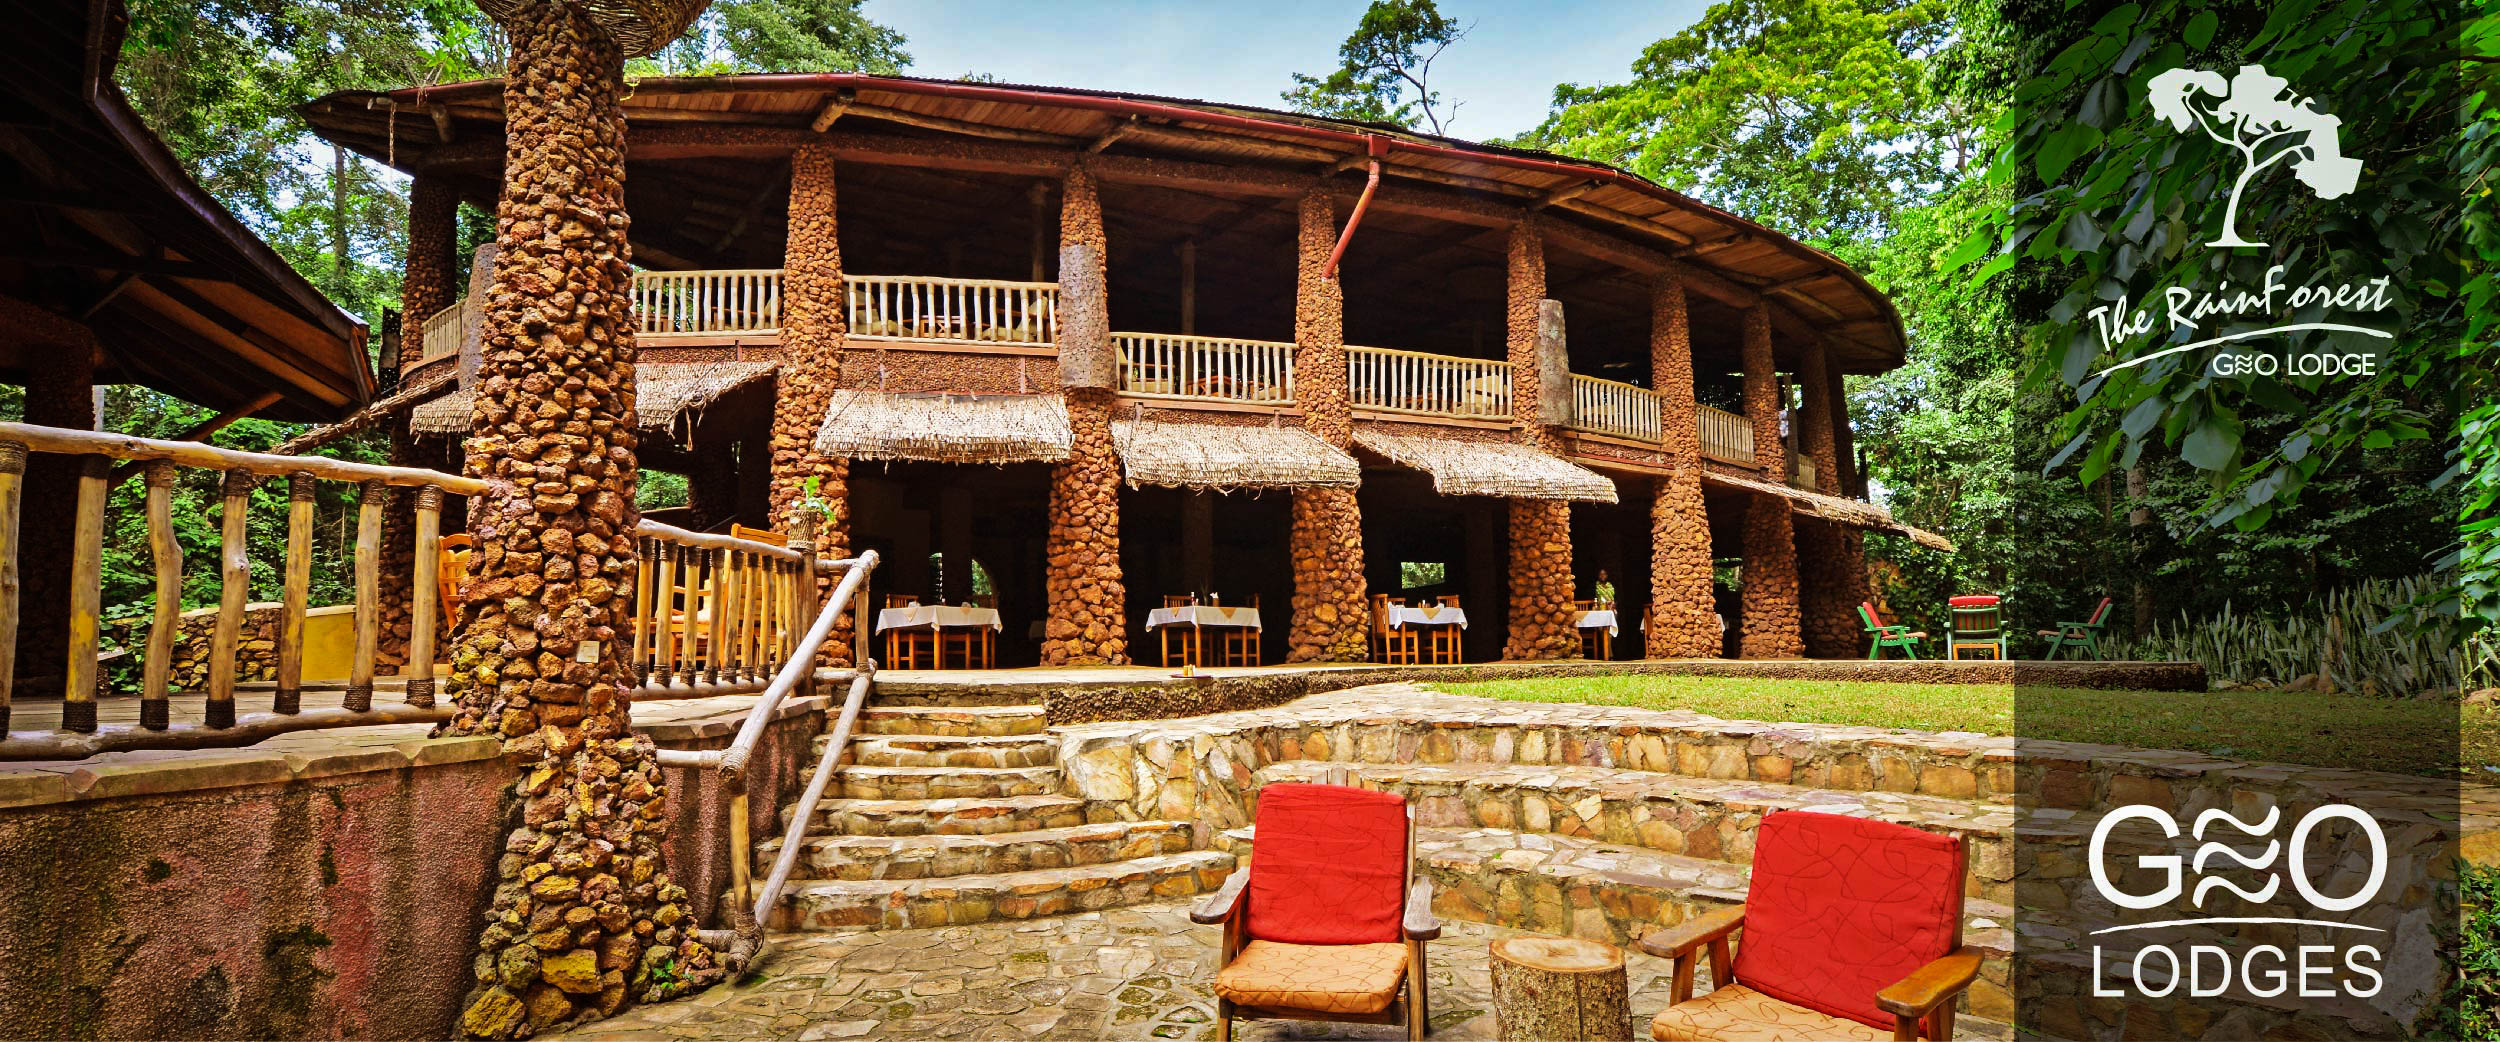 The RainForest Lodge in Mabira Forest is just 60 kilometres from Kampala - close enough for an active getaway of hiking and biking